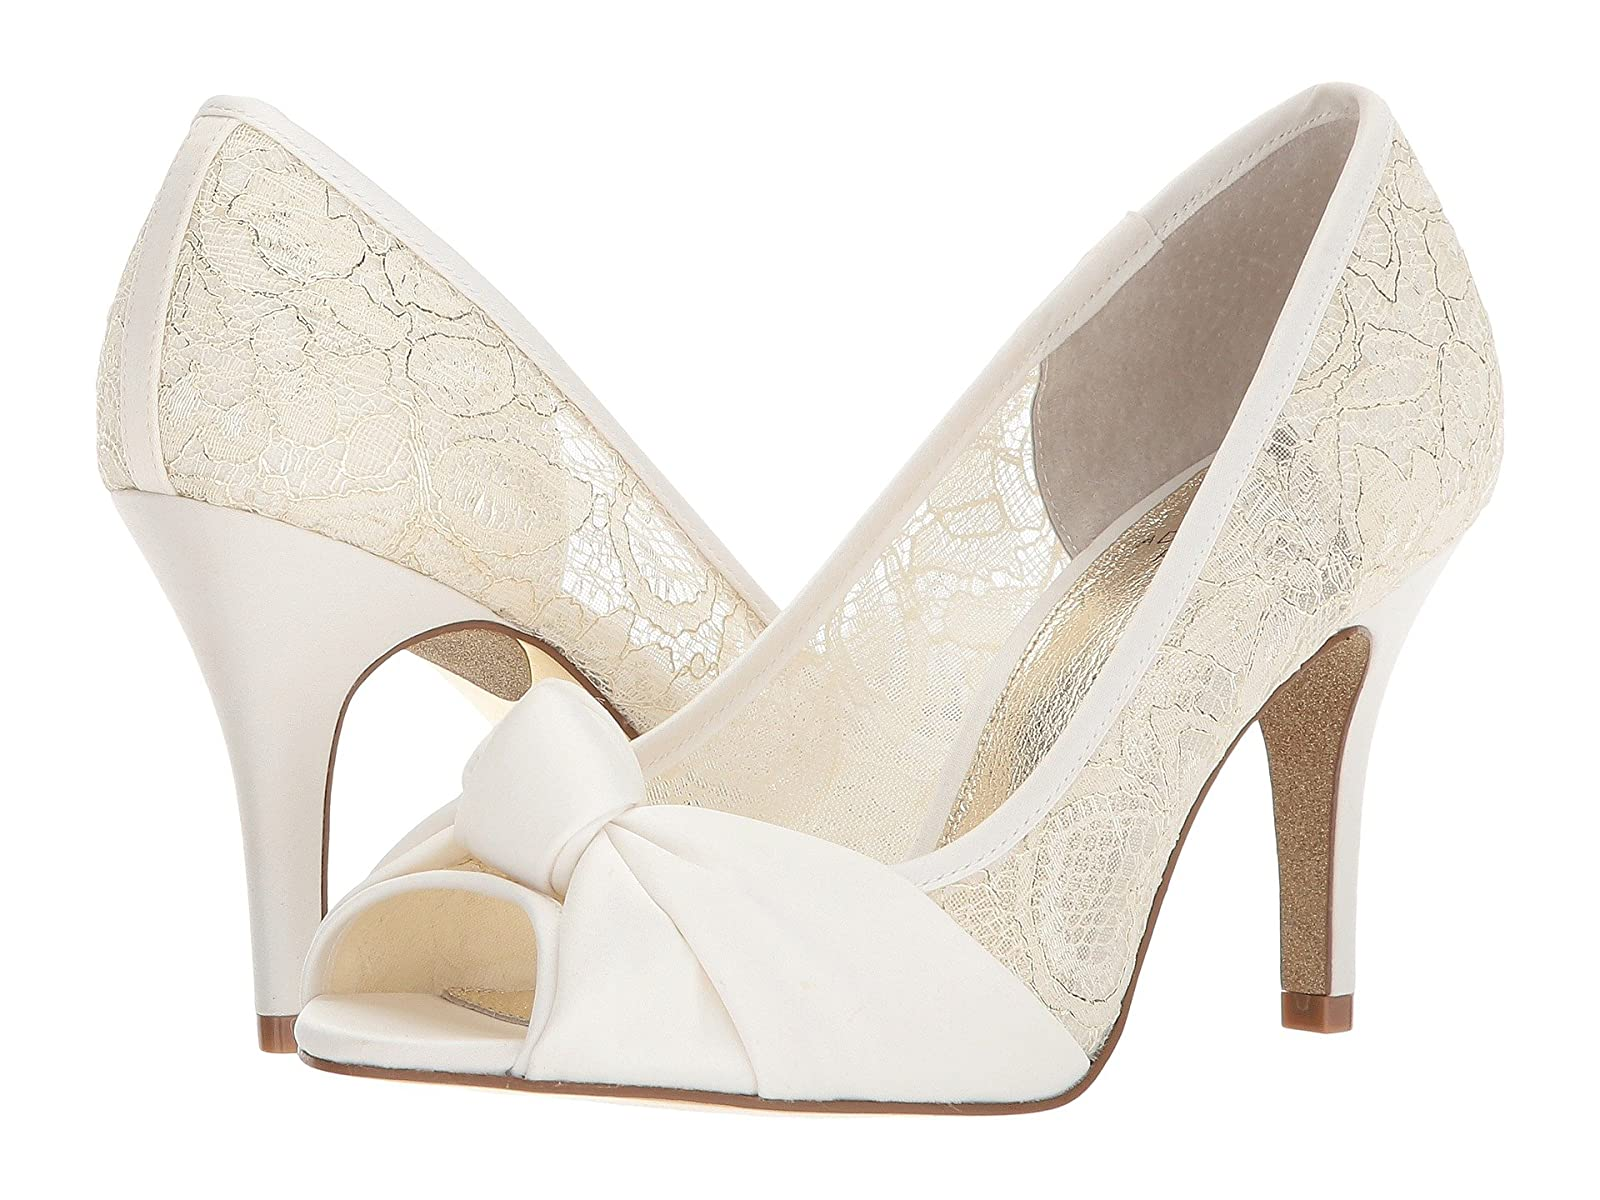 Adrianna Papell FrancescaAtmospheric grades have affordable shoes